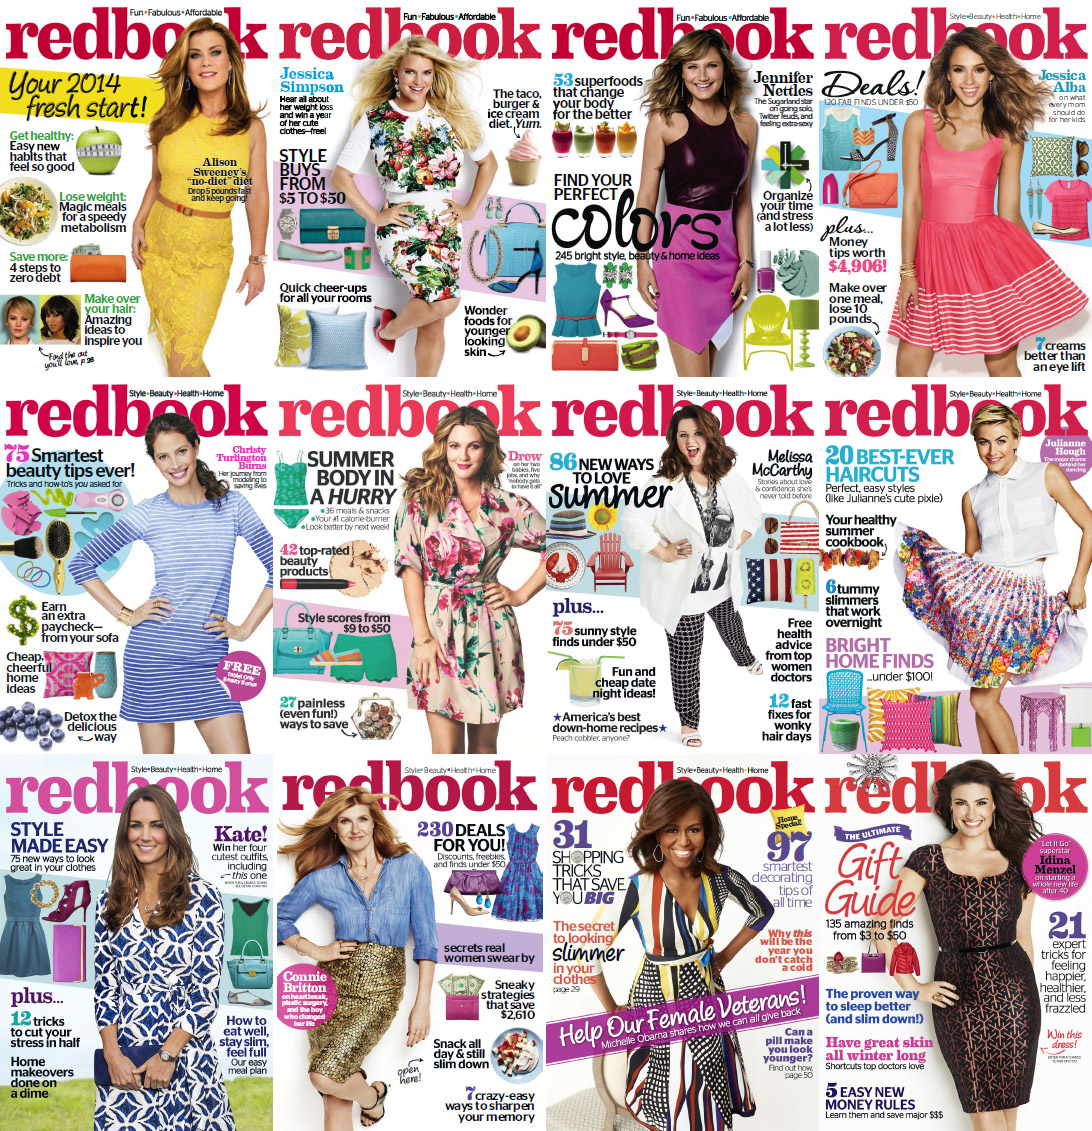 Redbook Magazine - Full Year 2014 Issues Collection free download